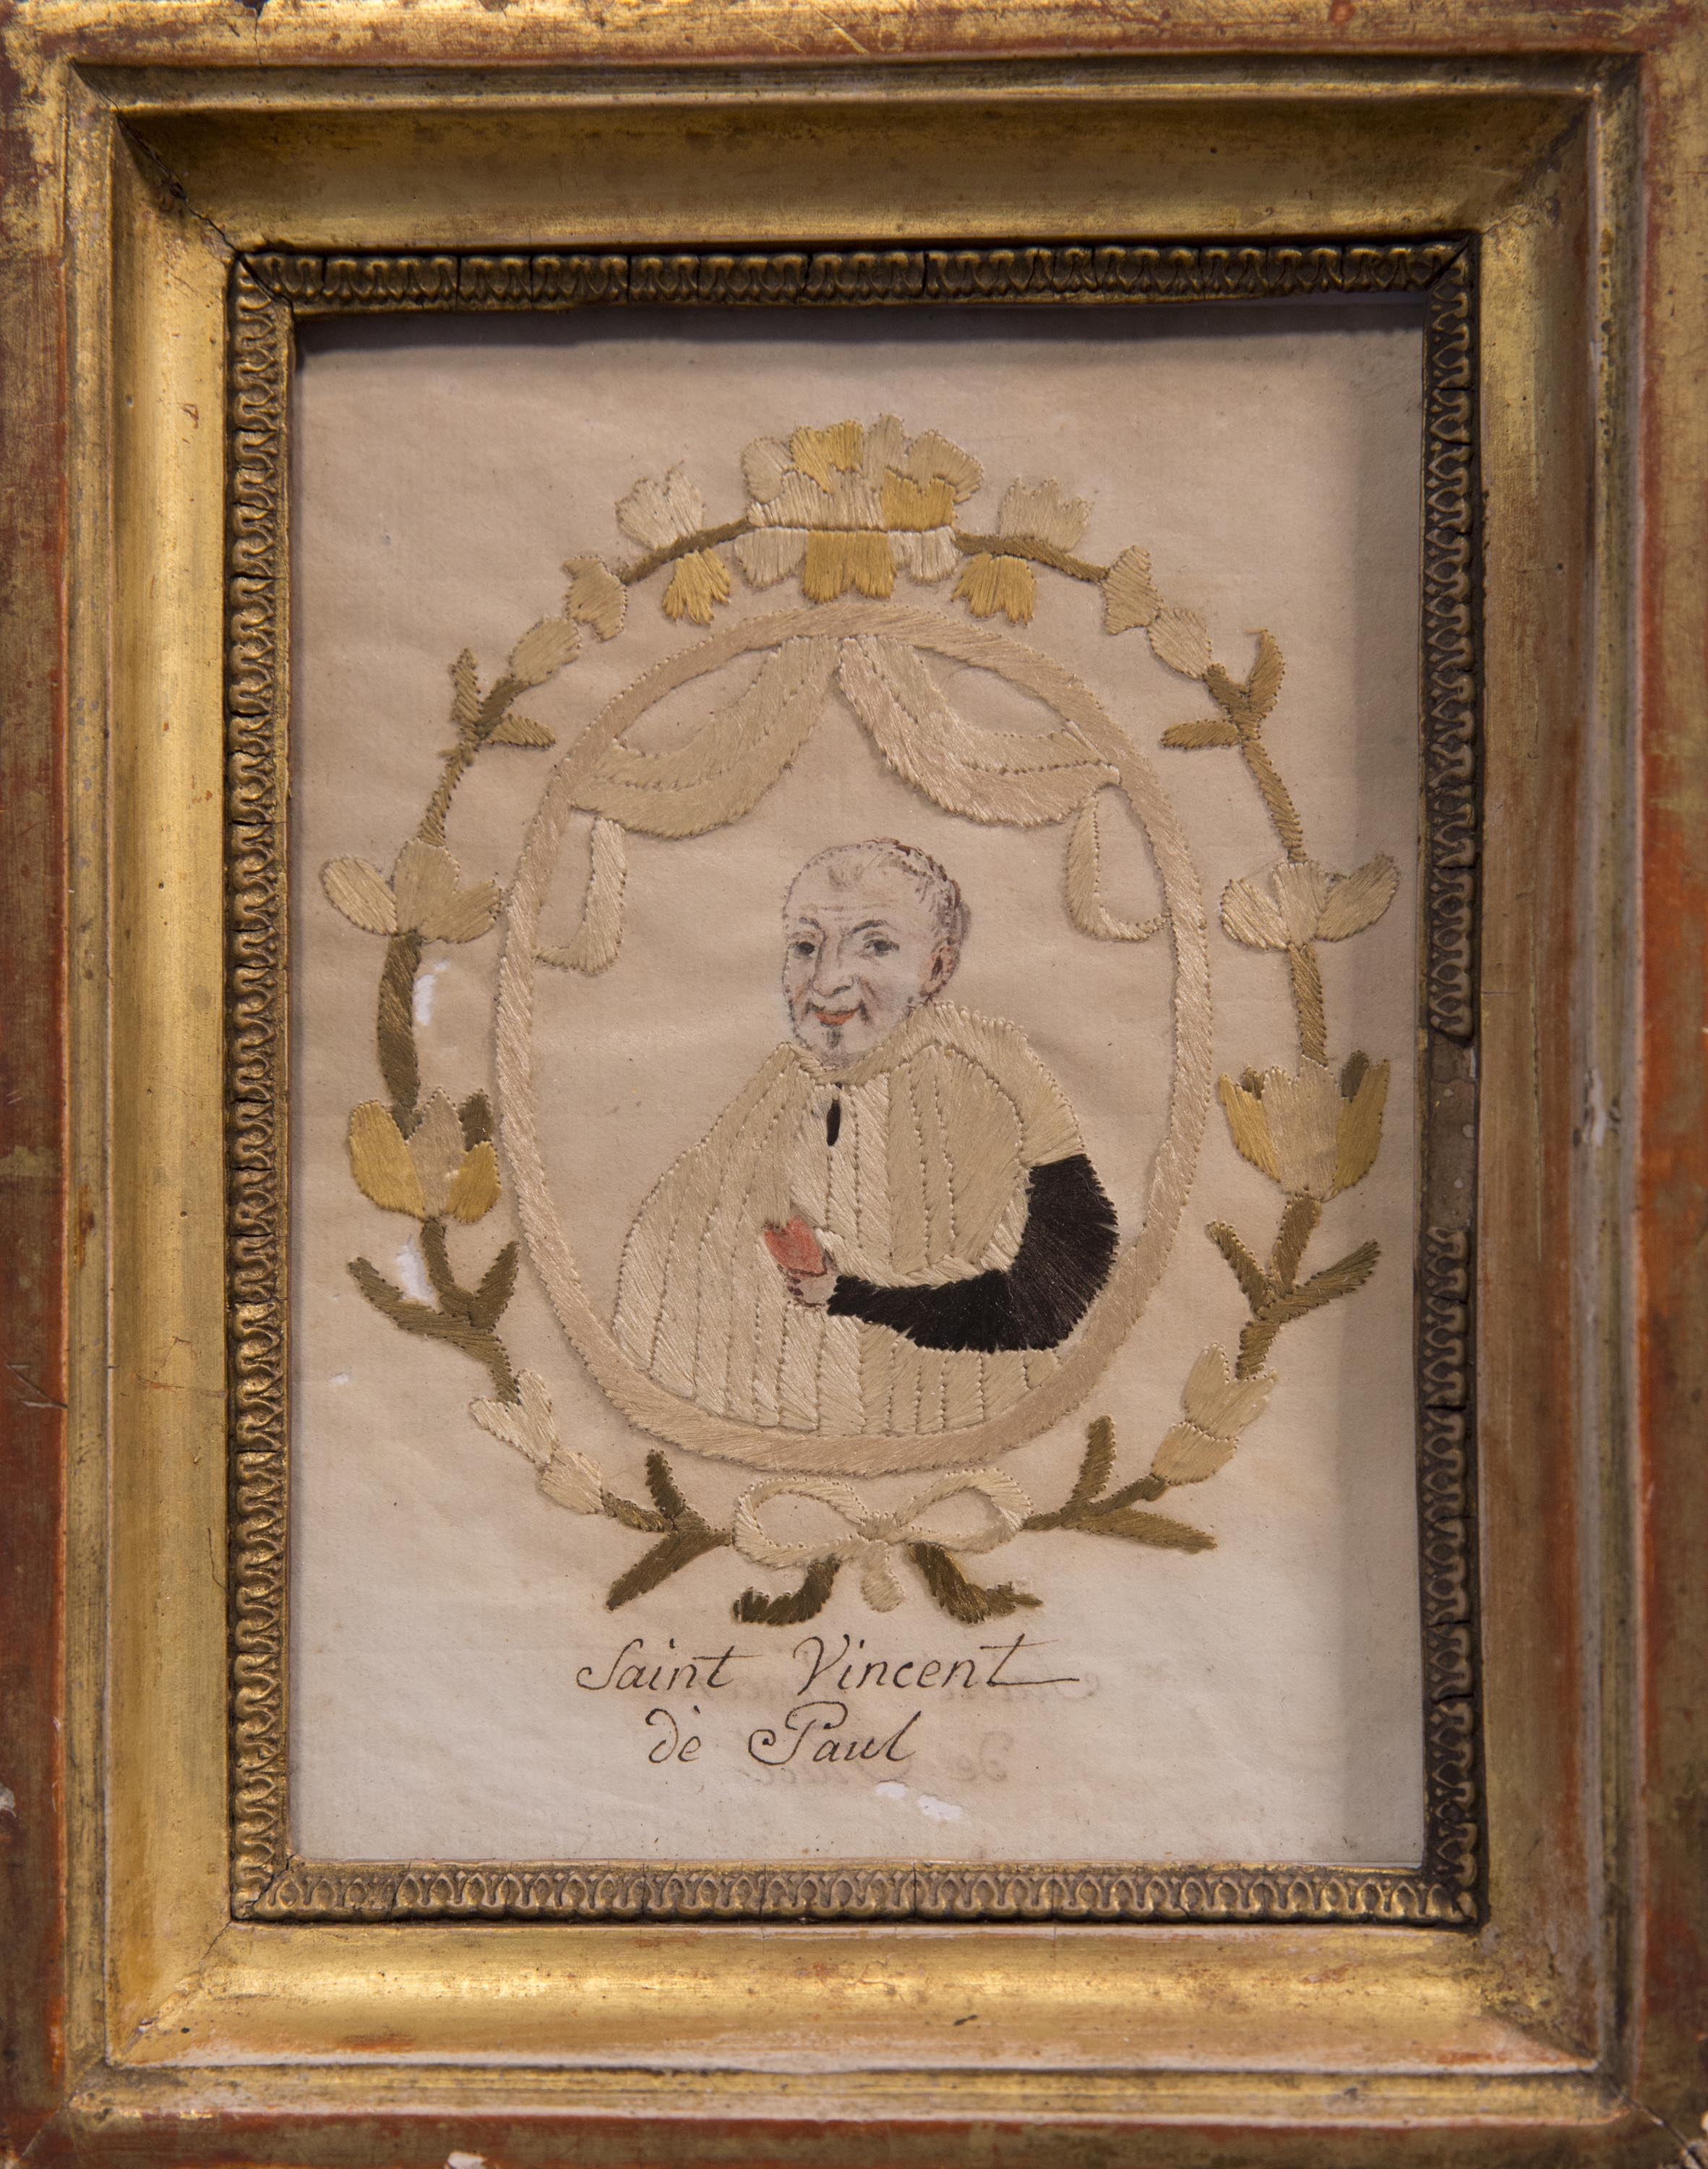 Rustic hand-embroidered portrait (silk thread embroidery decorating a hand-drawn portrait) in original gilded wooden frame 6 x 7 3/4 in.